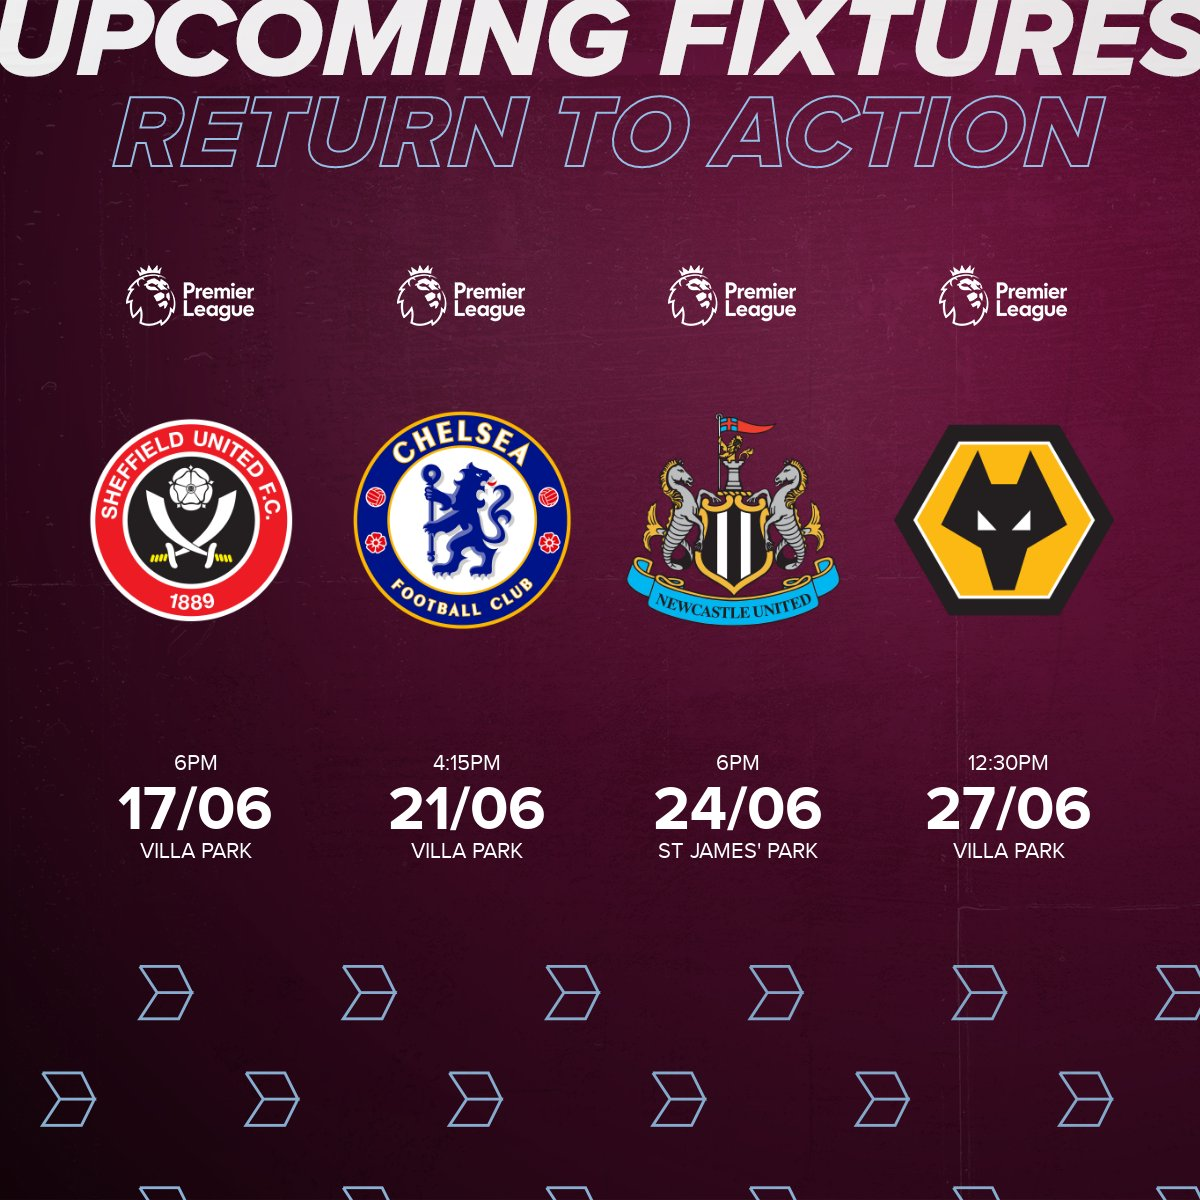 🚨 FIXTURES CONFIRMED 🚨 We will return to Premier League action against Sheffield United at Villa Park on Wednesday June 17. 👊 #AVFC